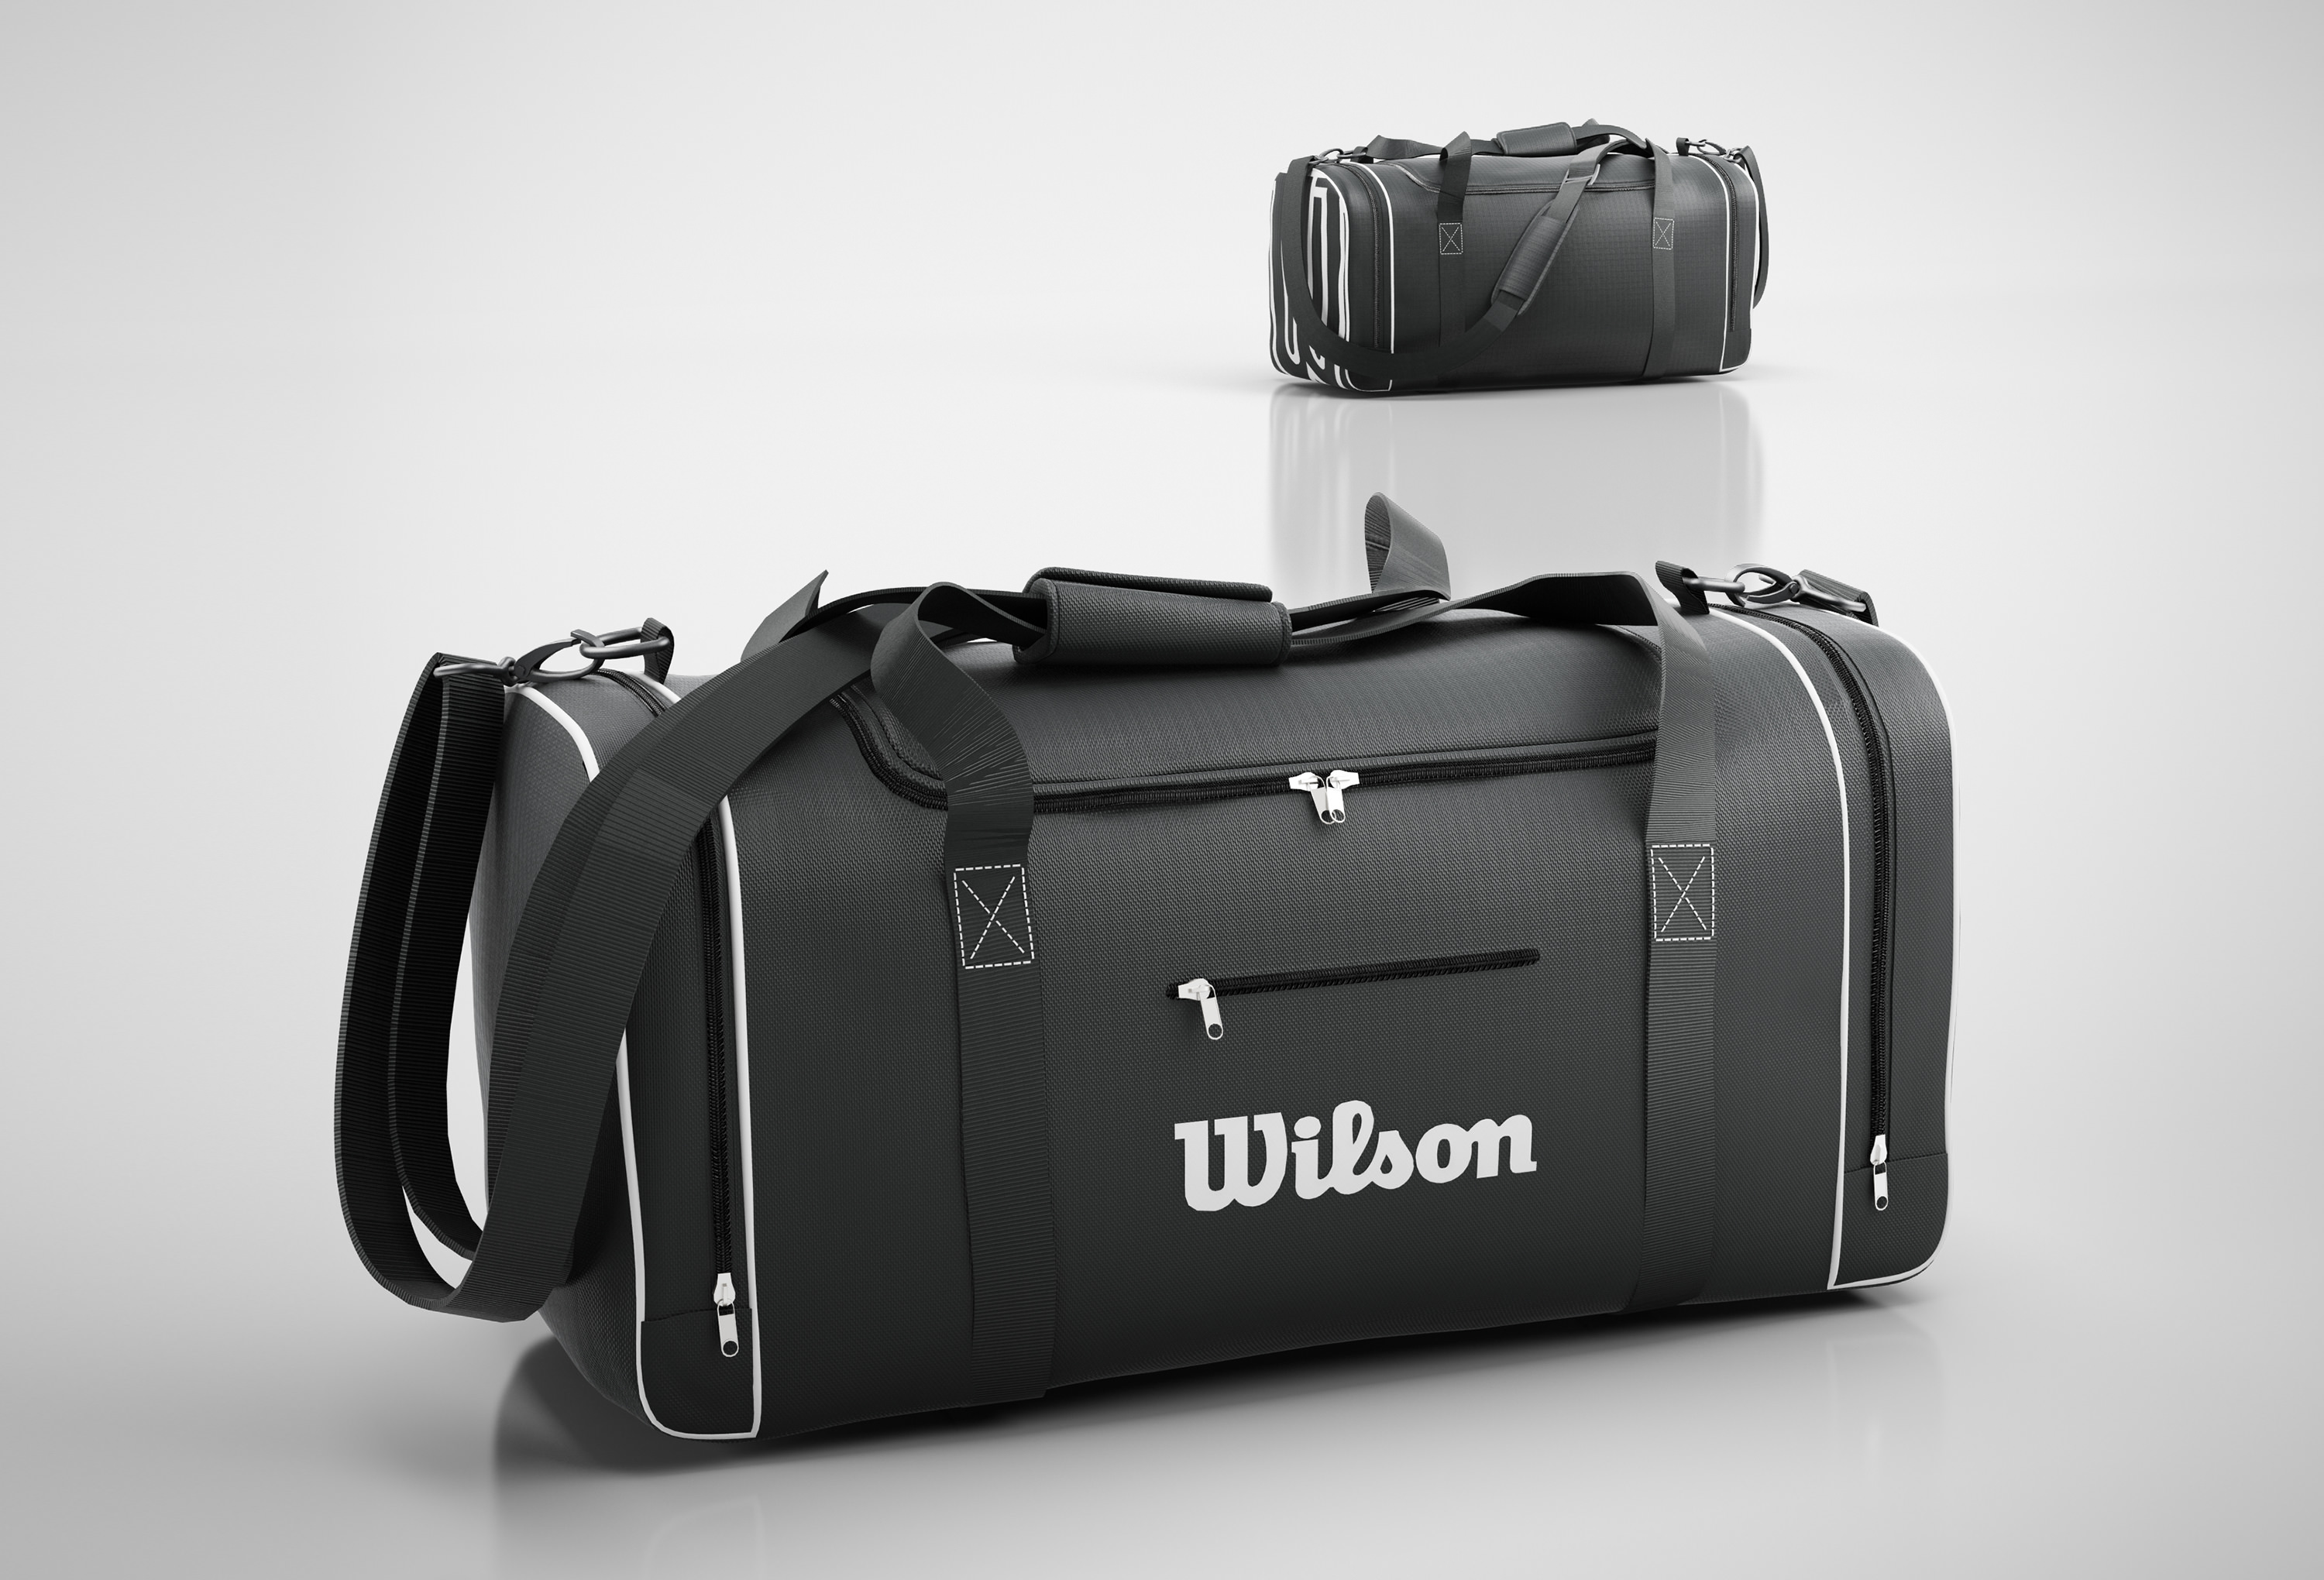 Luggage bag 3d model free download 3ds max format